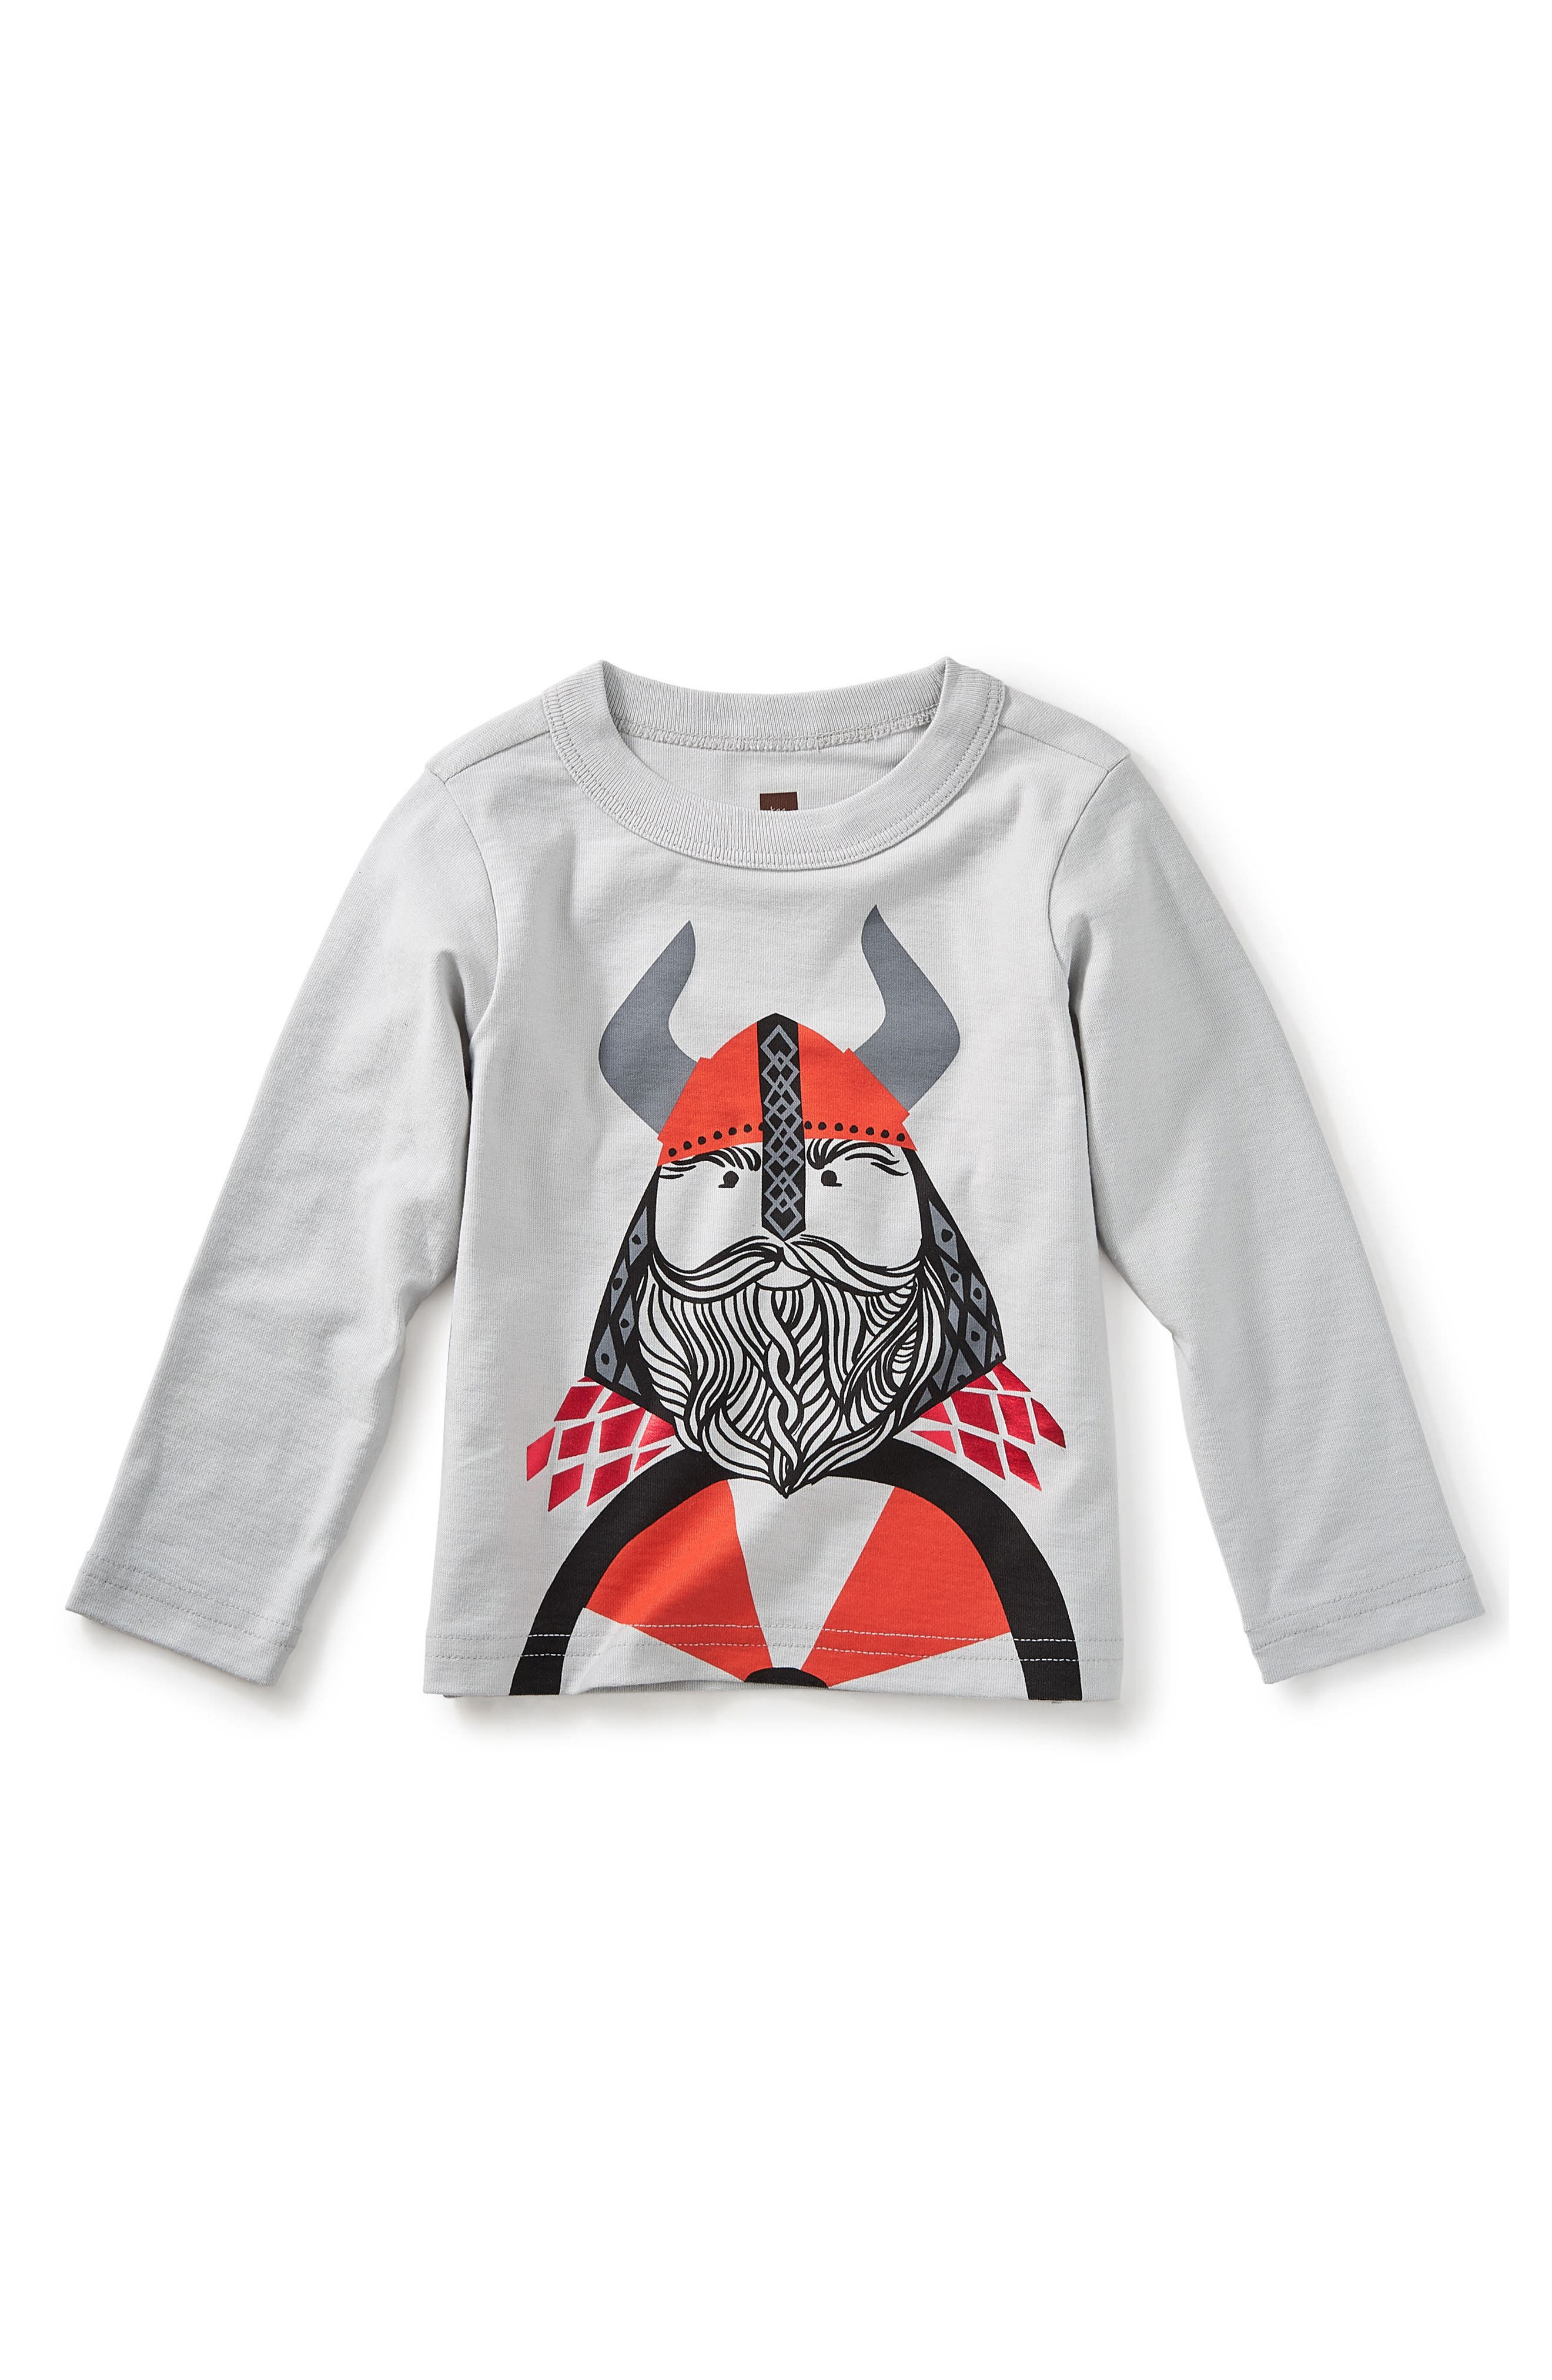 Little Viking Graphic T-Shirt,                             Main thumbnail 1, color,                             020